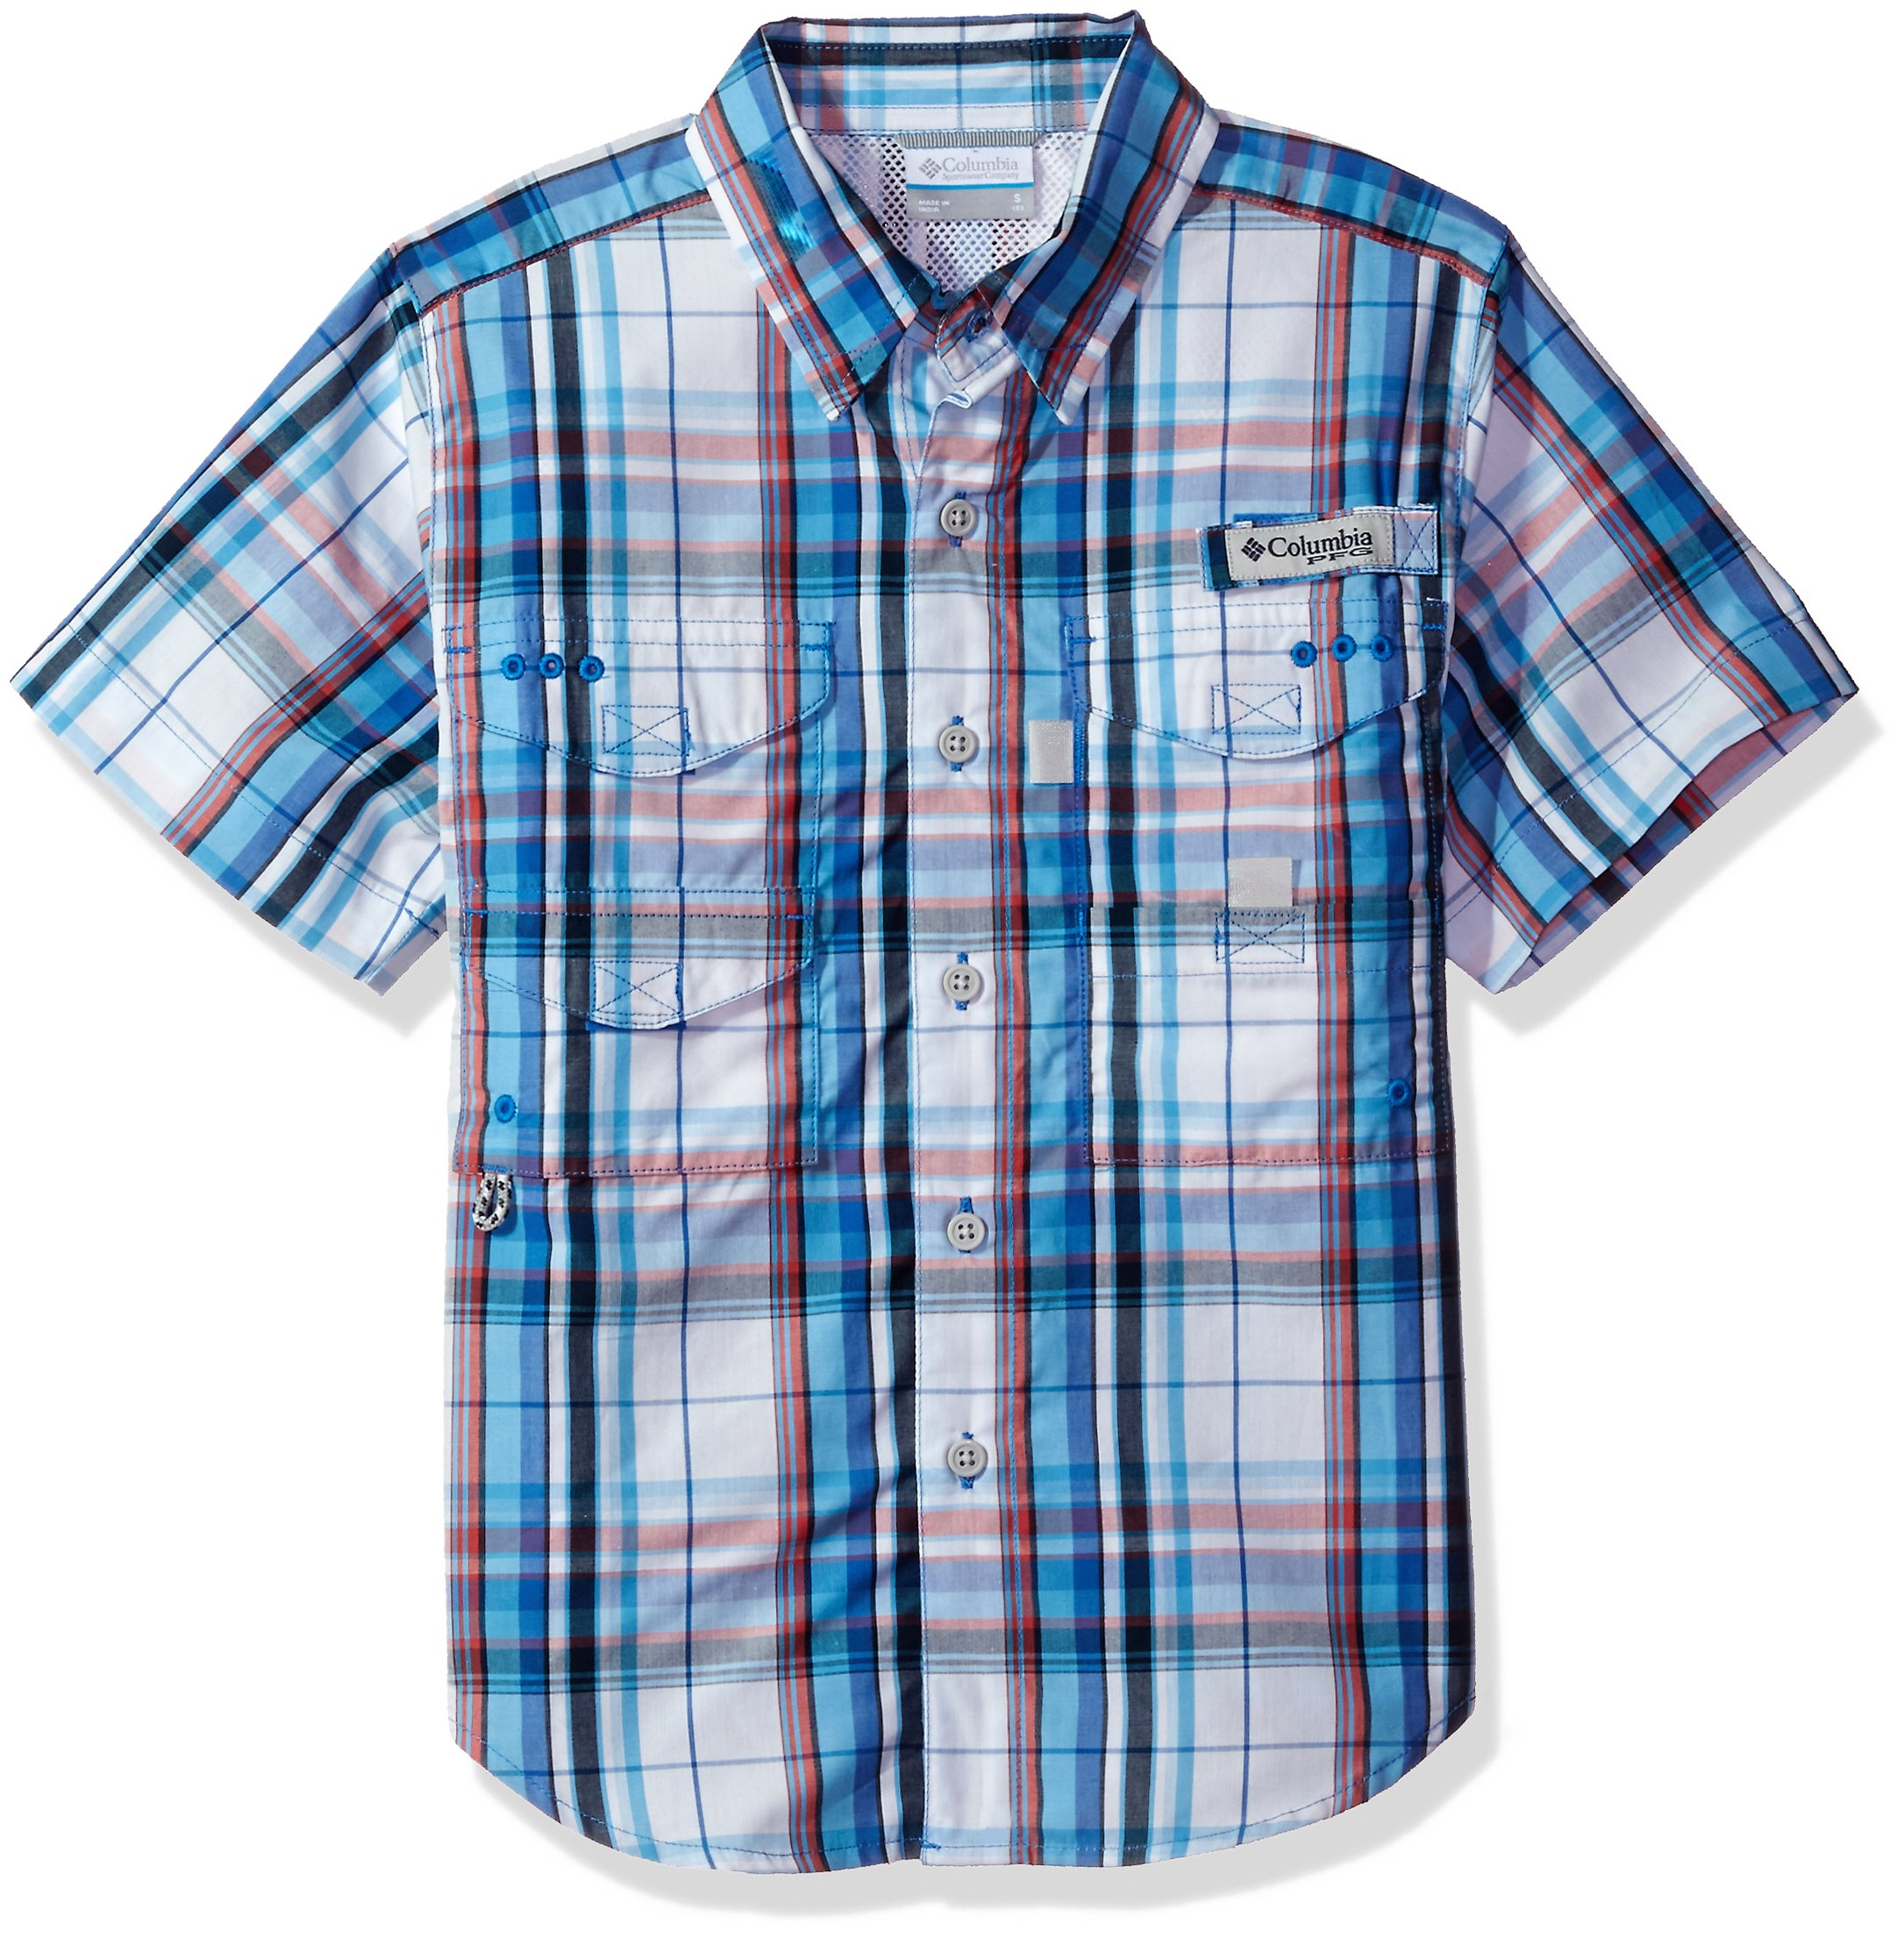 Columbia Youth Boys Super Bonehead Short Sleeve Shirt, Vivid Blue Plaid, Small